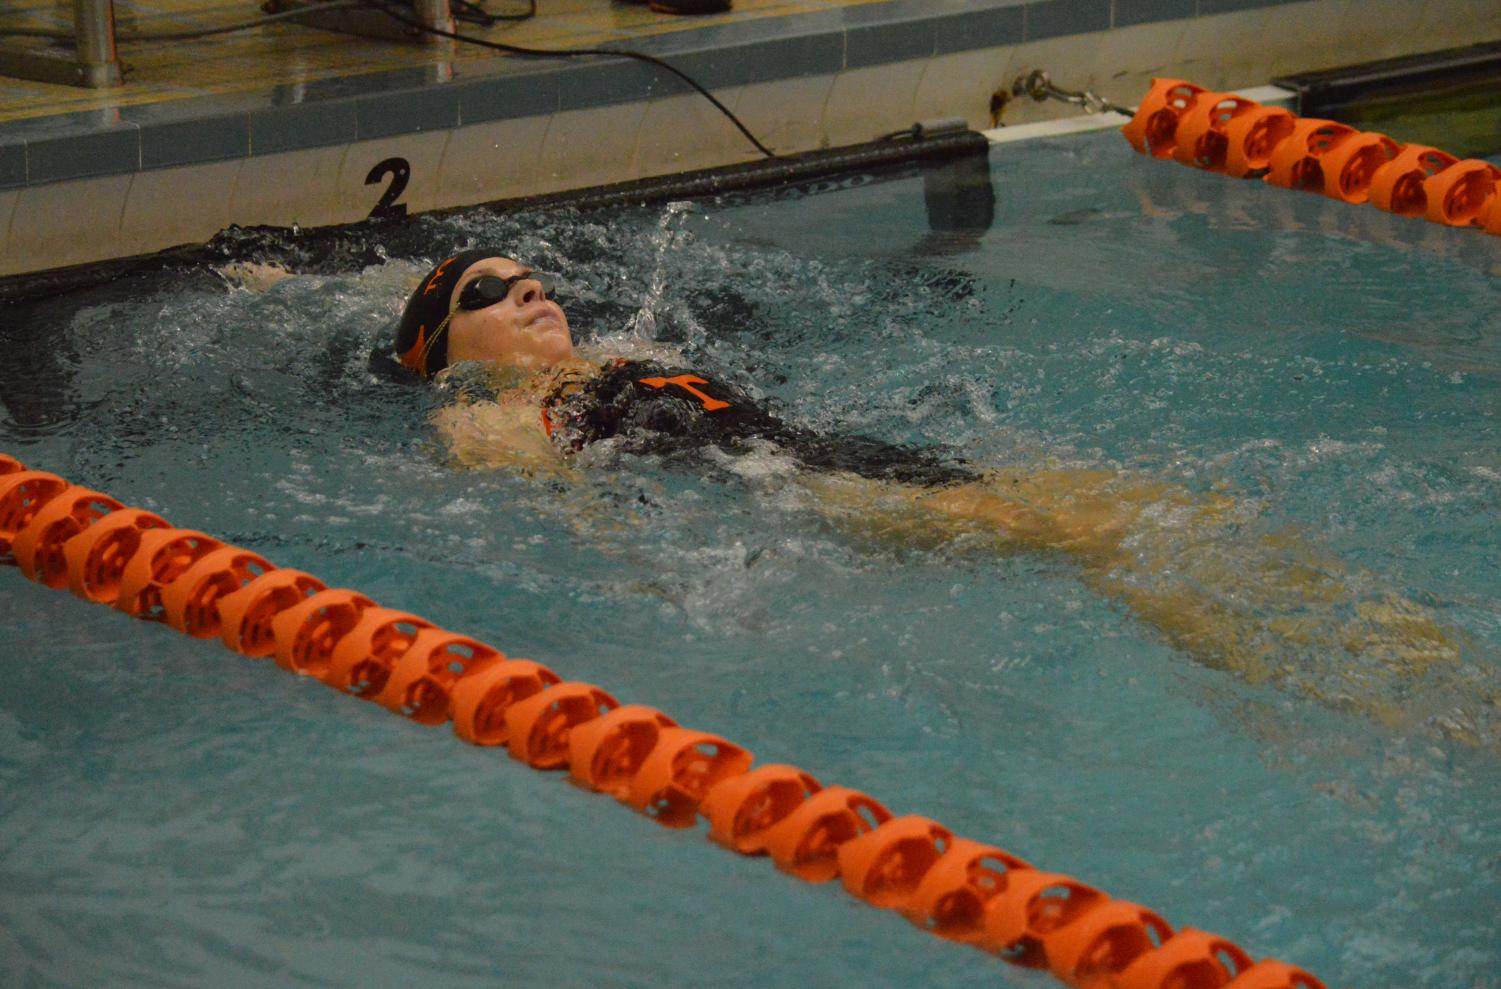 Cate Baran finishing the 100 backstroke